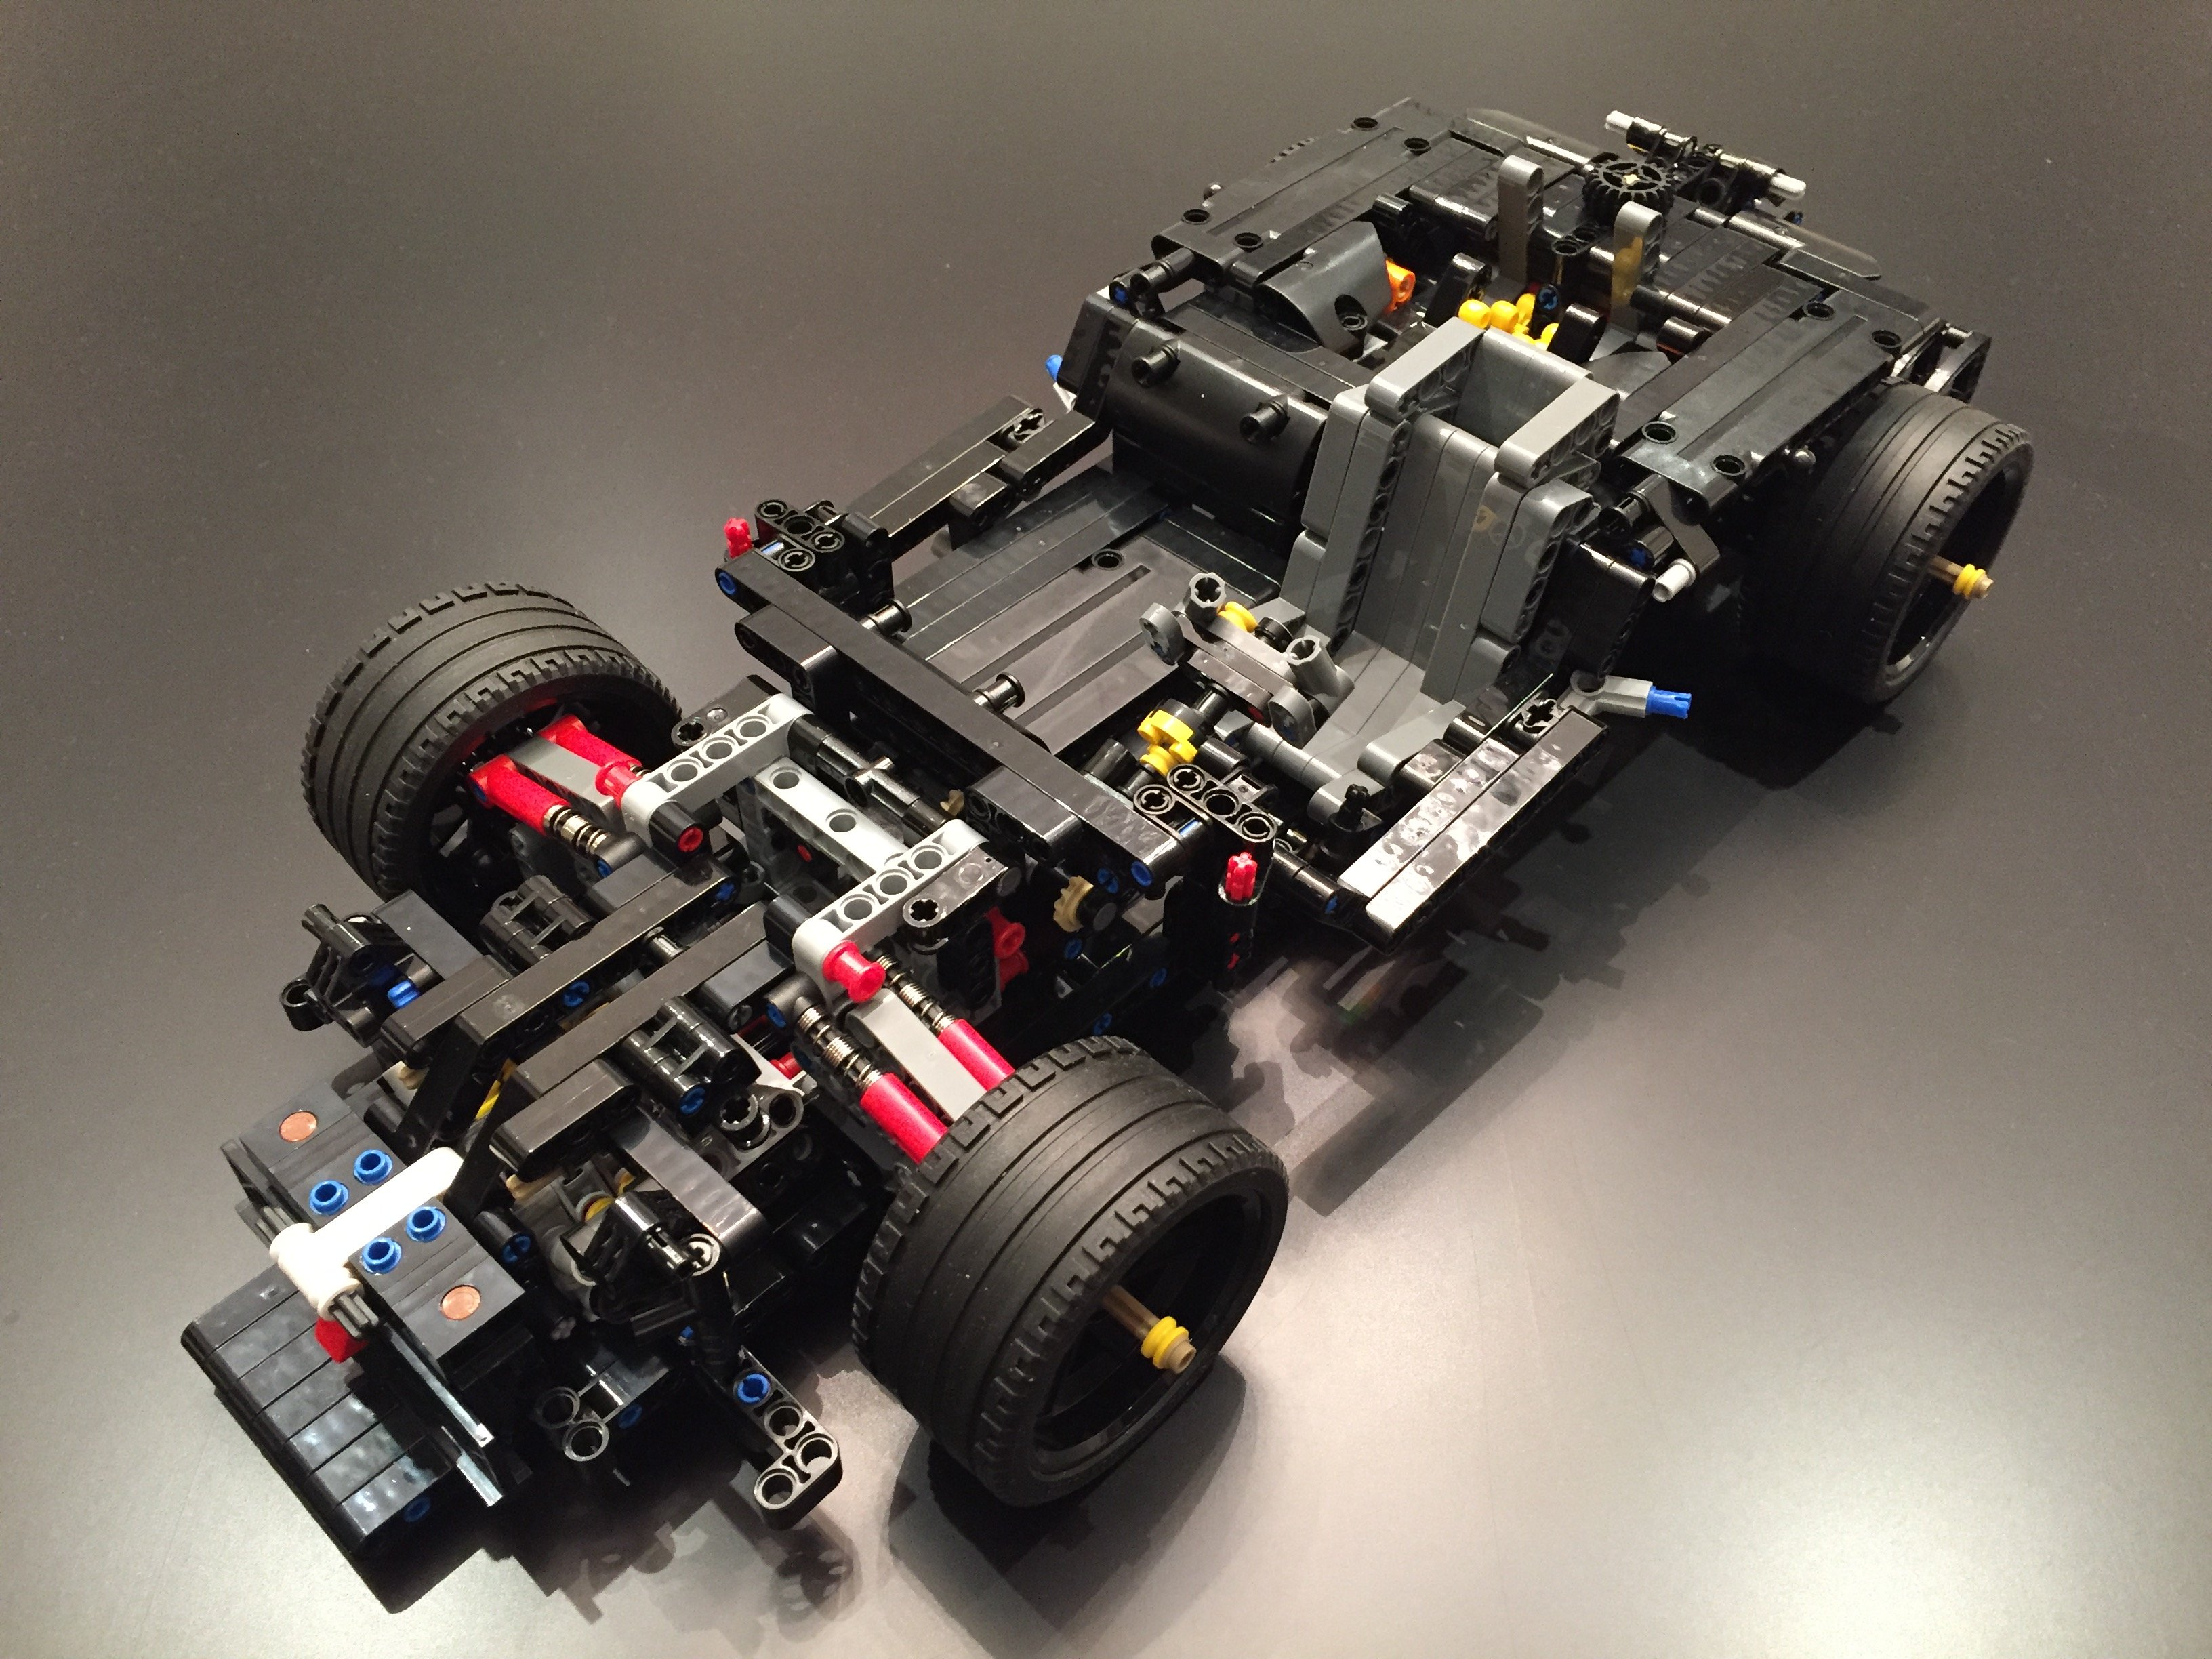 Lego Moc 6667 Mercedes Benz Amg C63 Dtm Manual Chassis Only